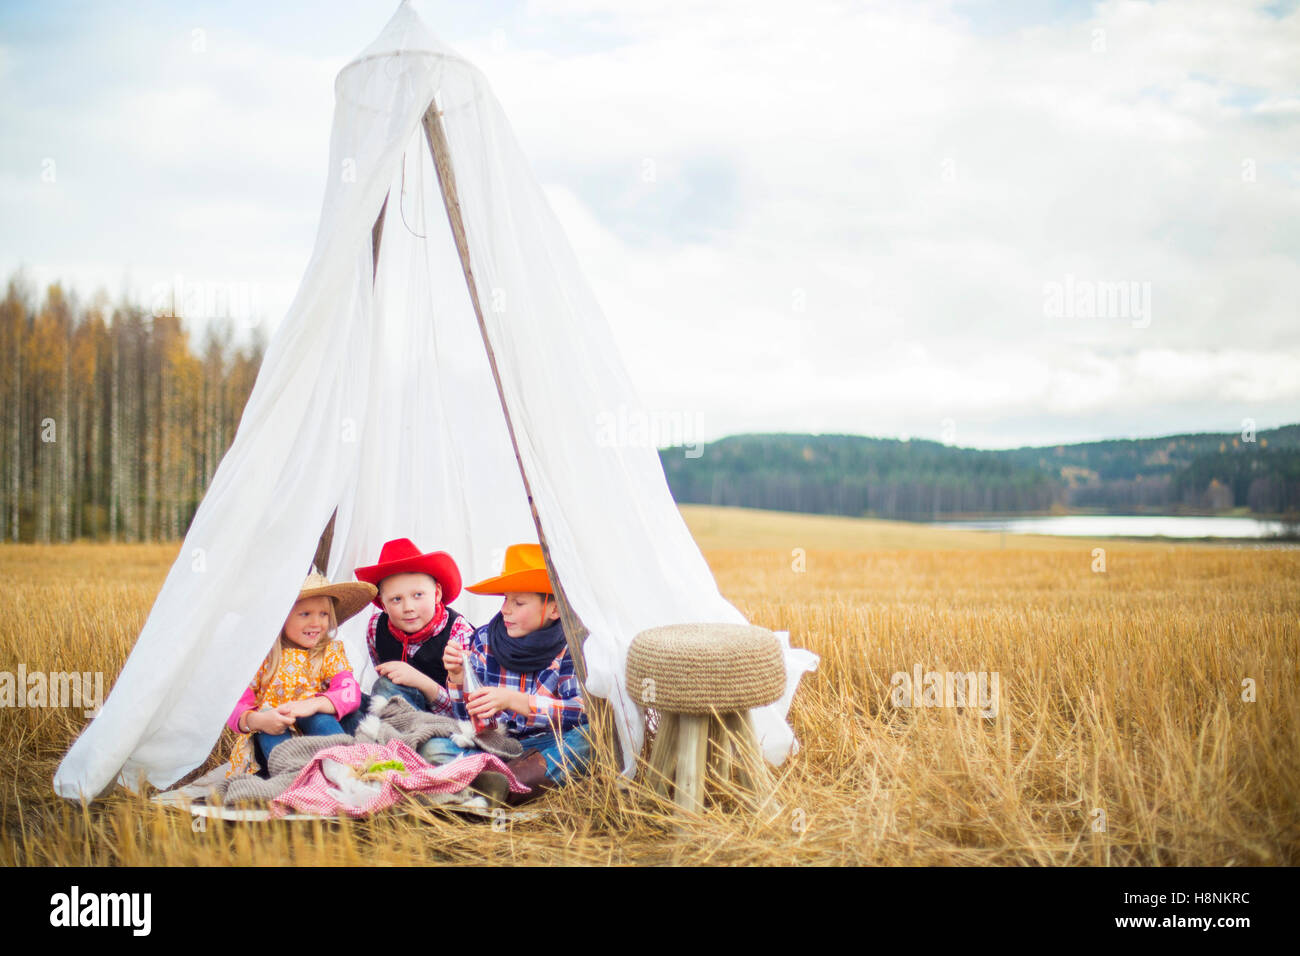 Enfants (8-9) portant des chapeaux de cow-boy sitting in tent Photo Stock